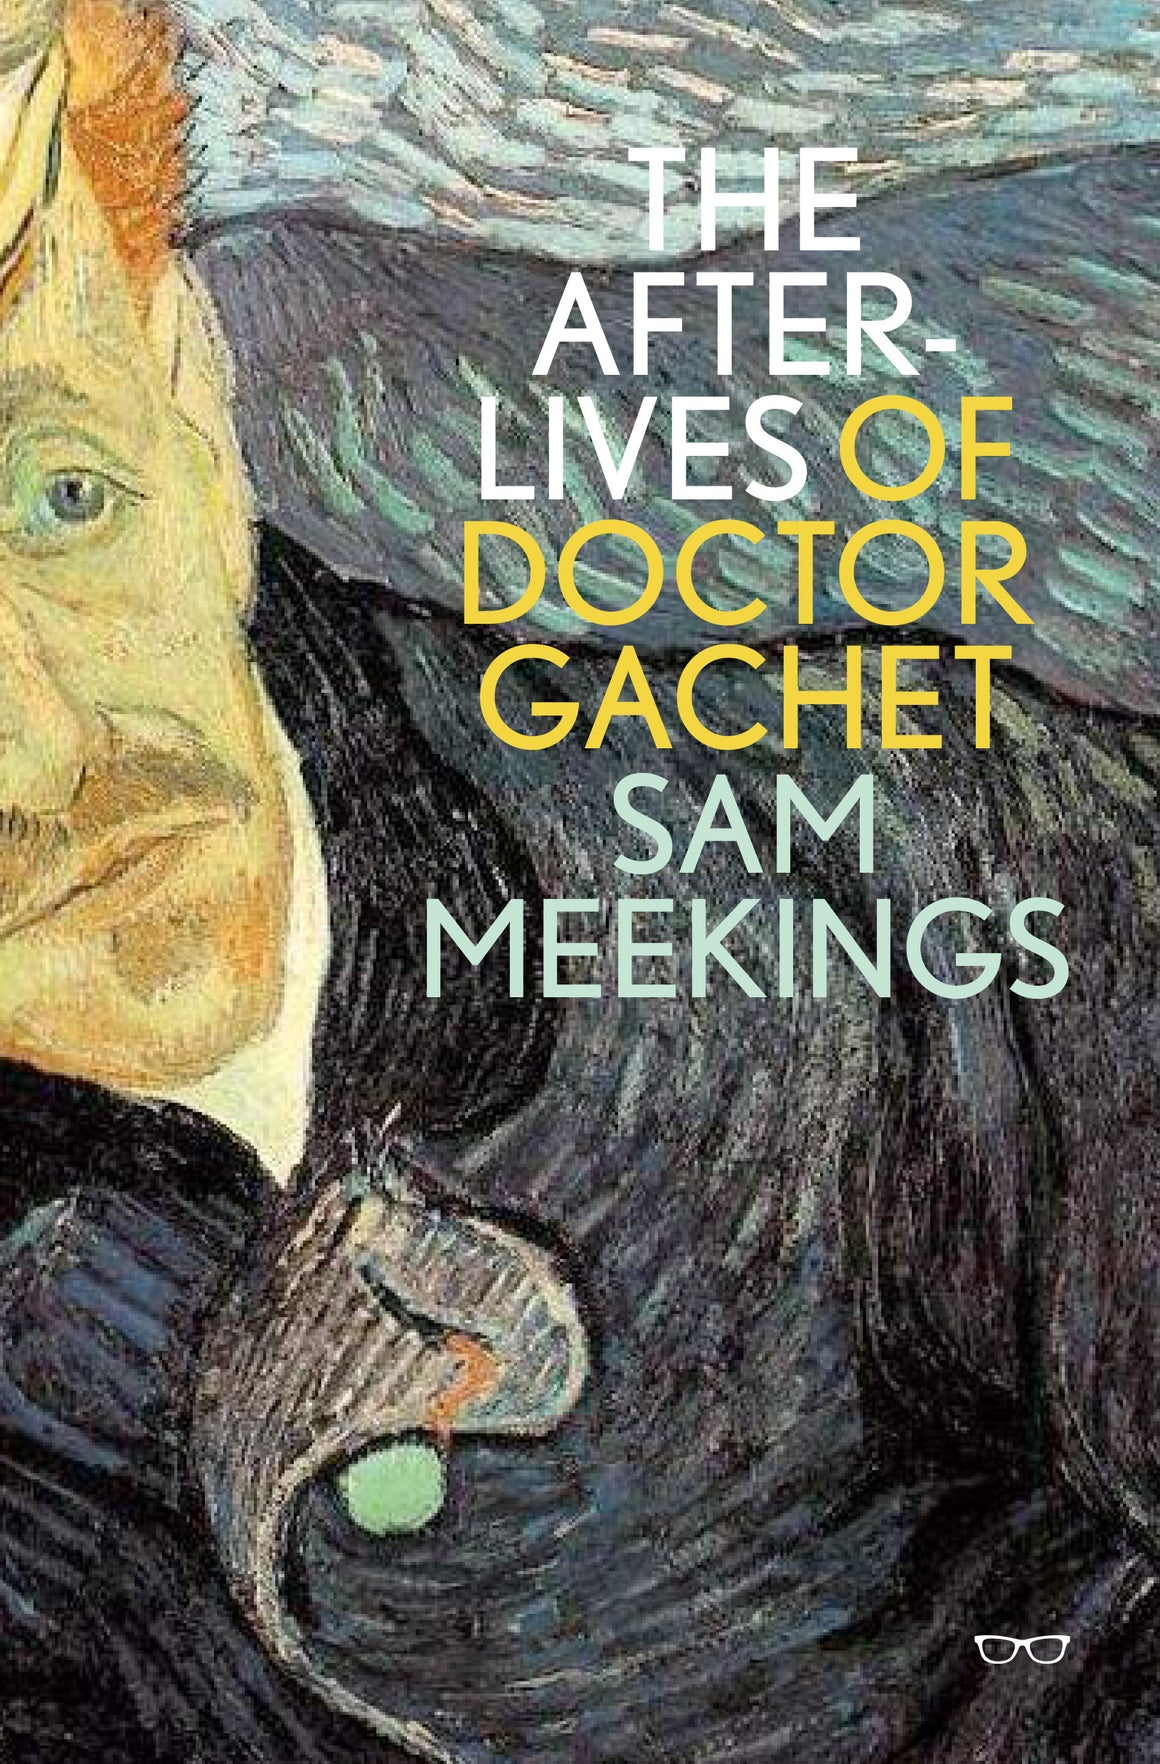 The Afterlives of Doctor Gachet by Sam Meekings